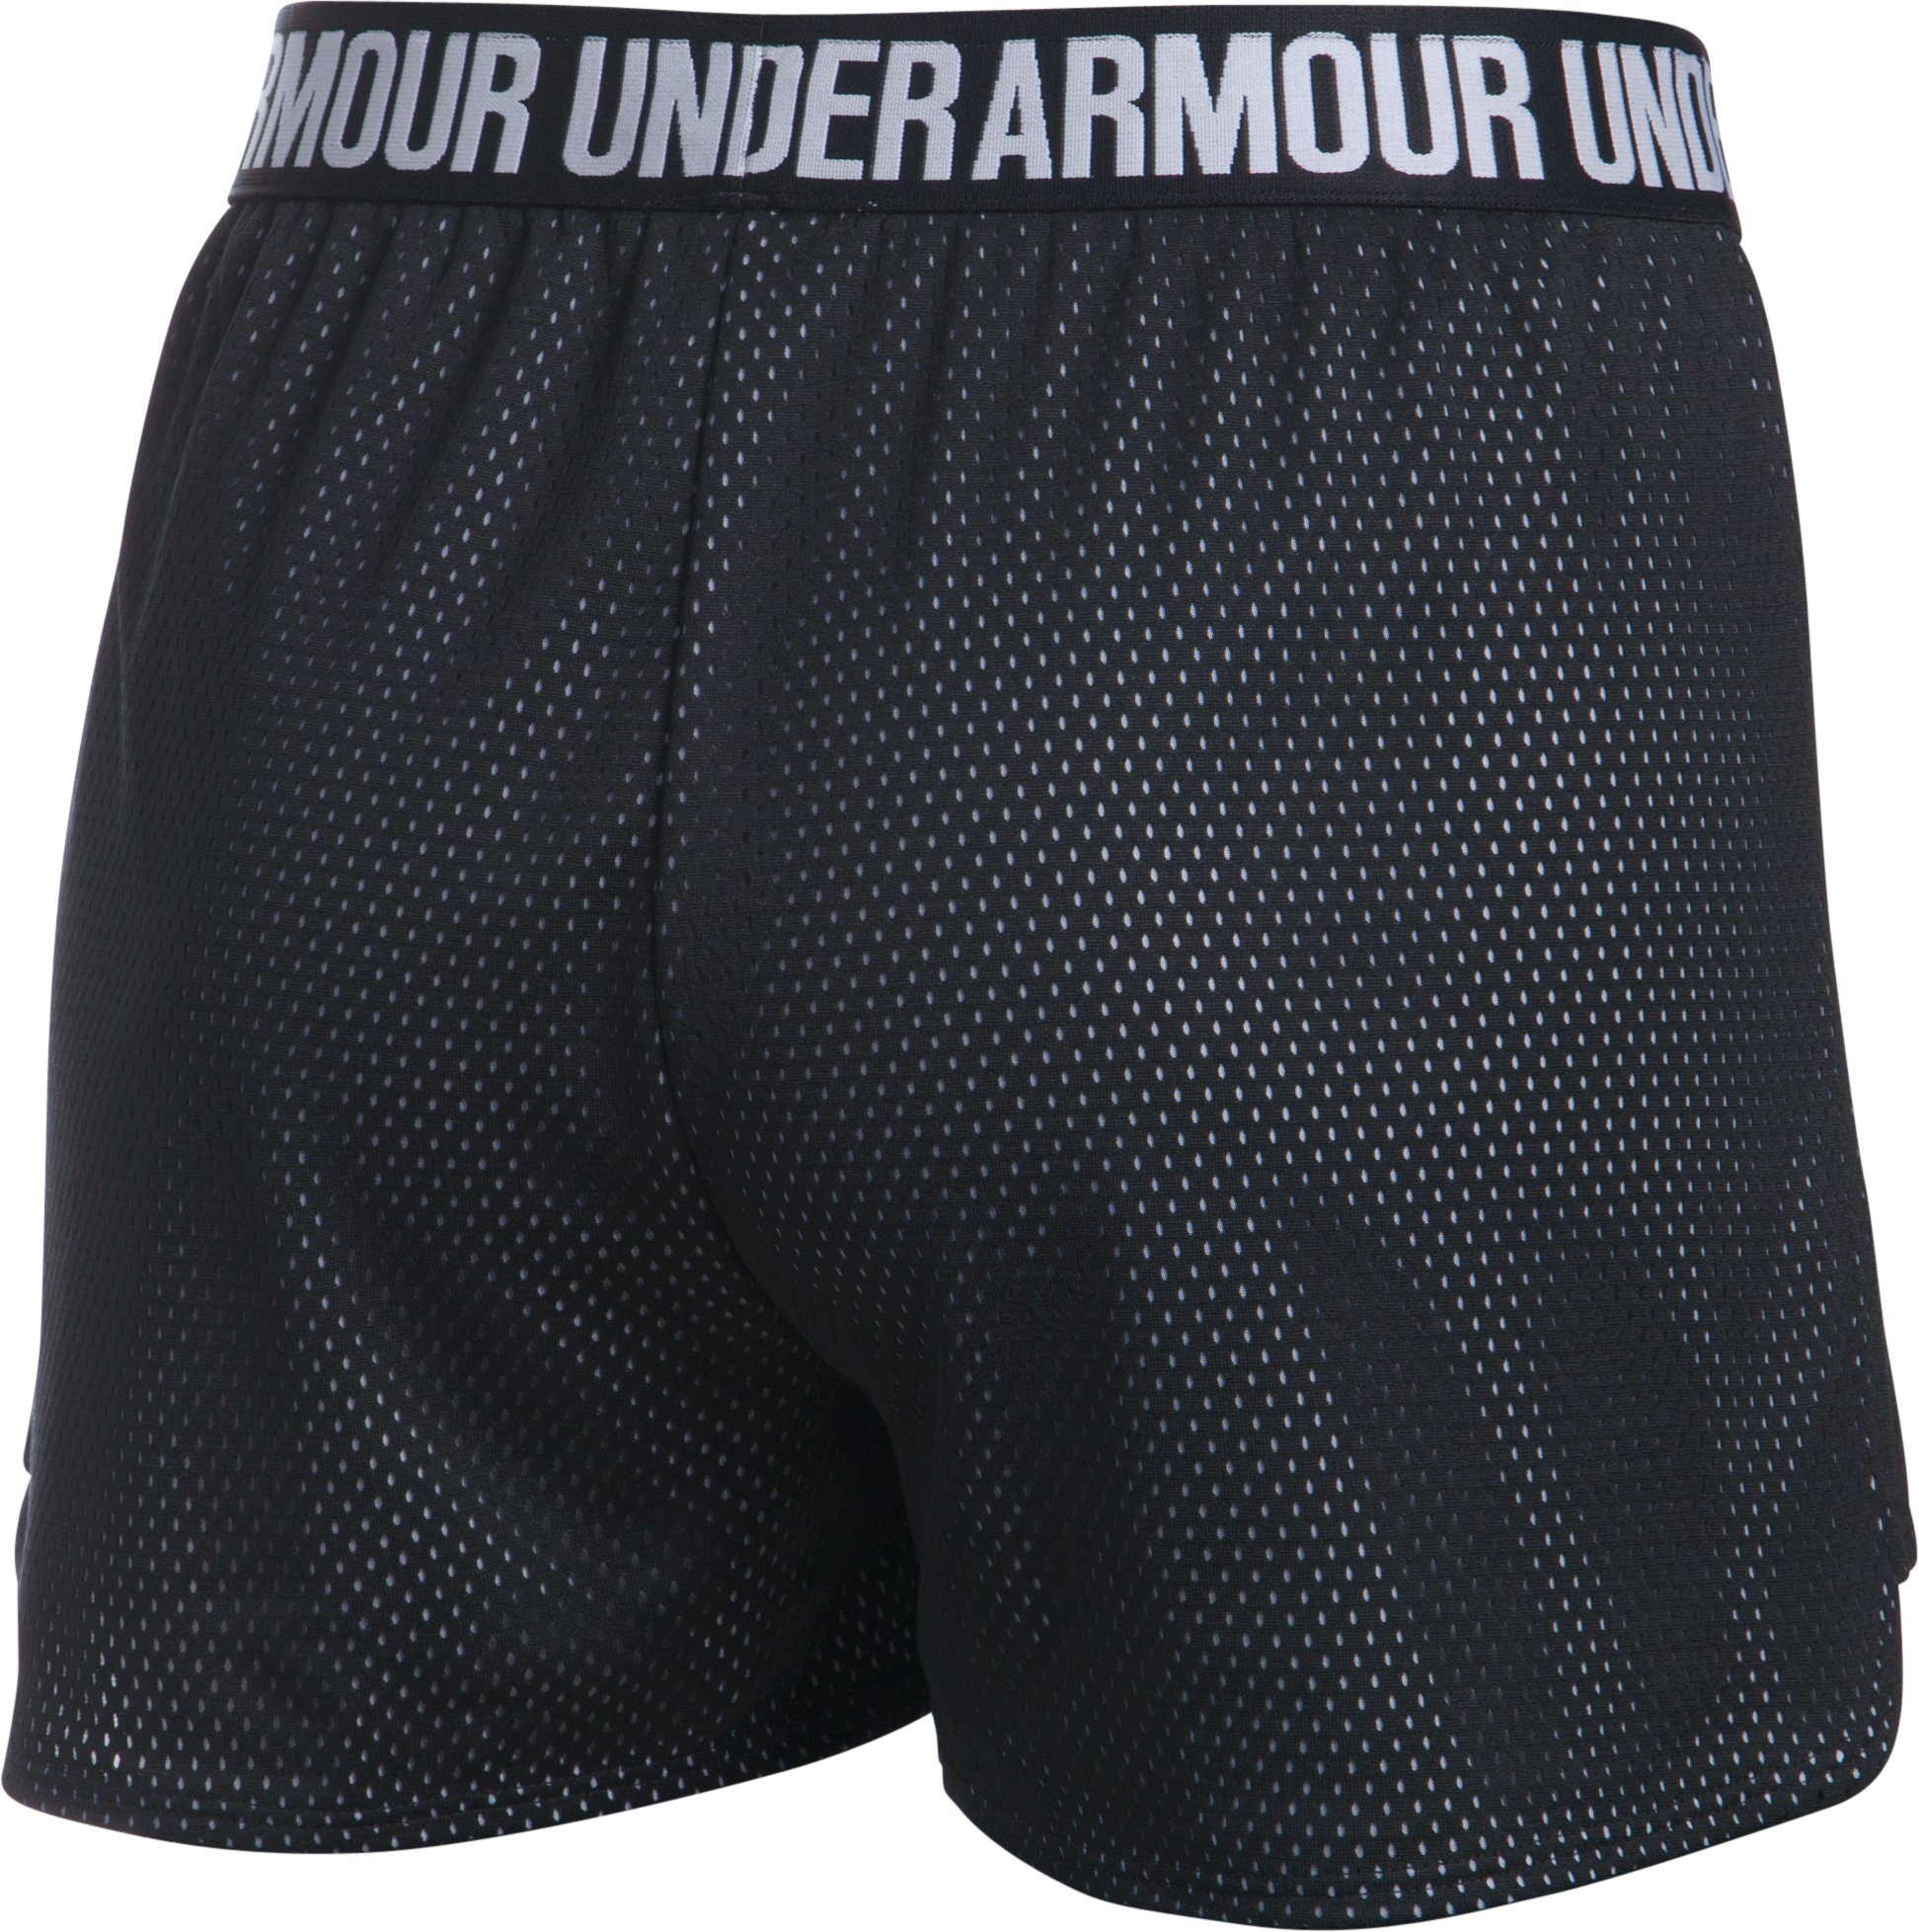 Women's UA Play Up Shorts 2.0 - Mesh, Black , undefined